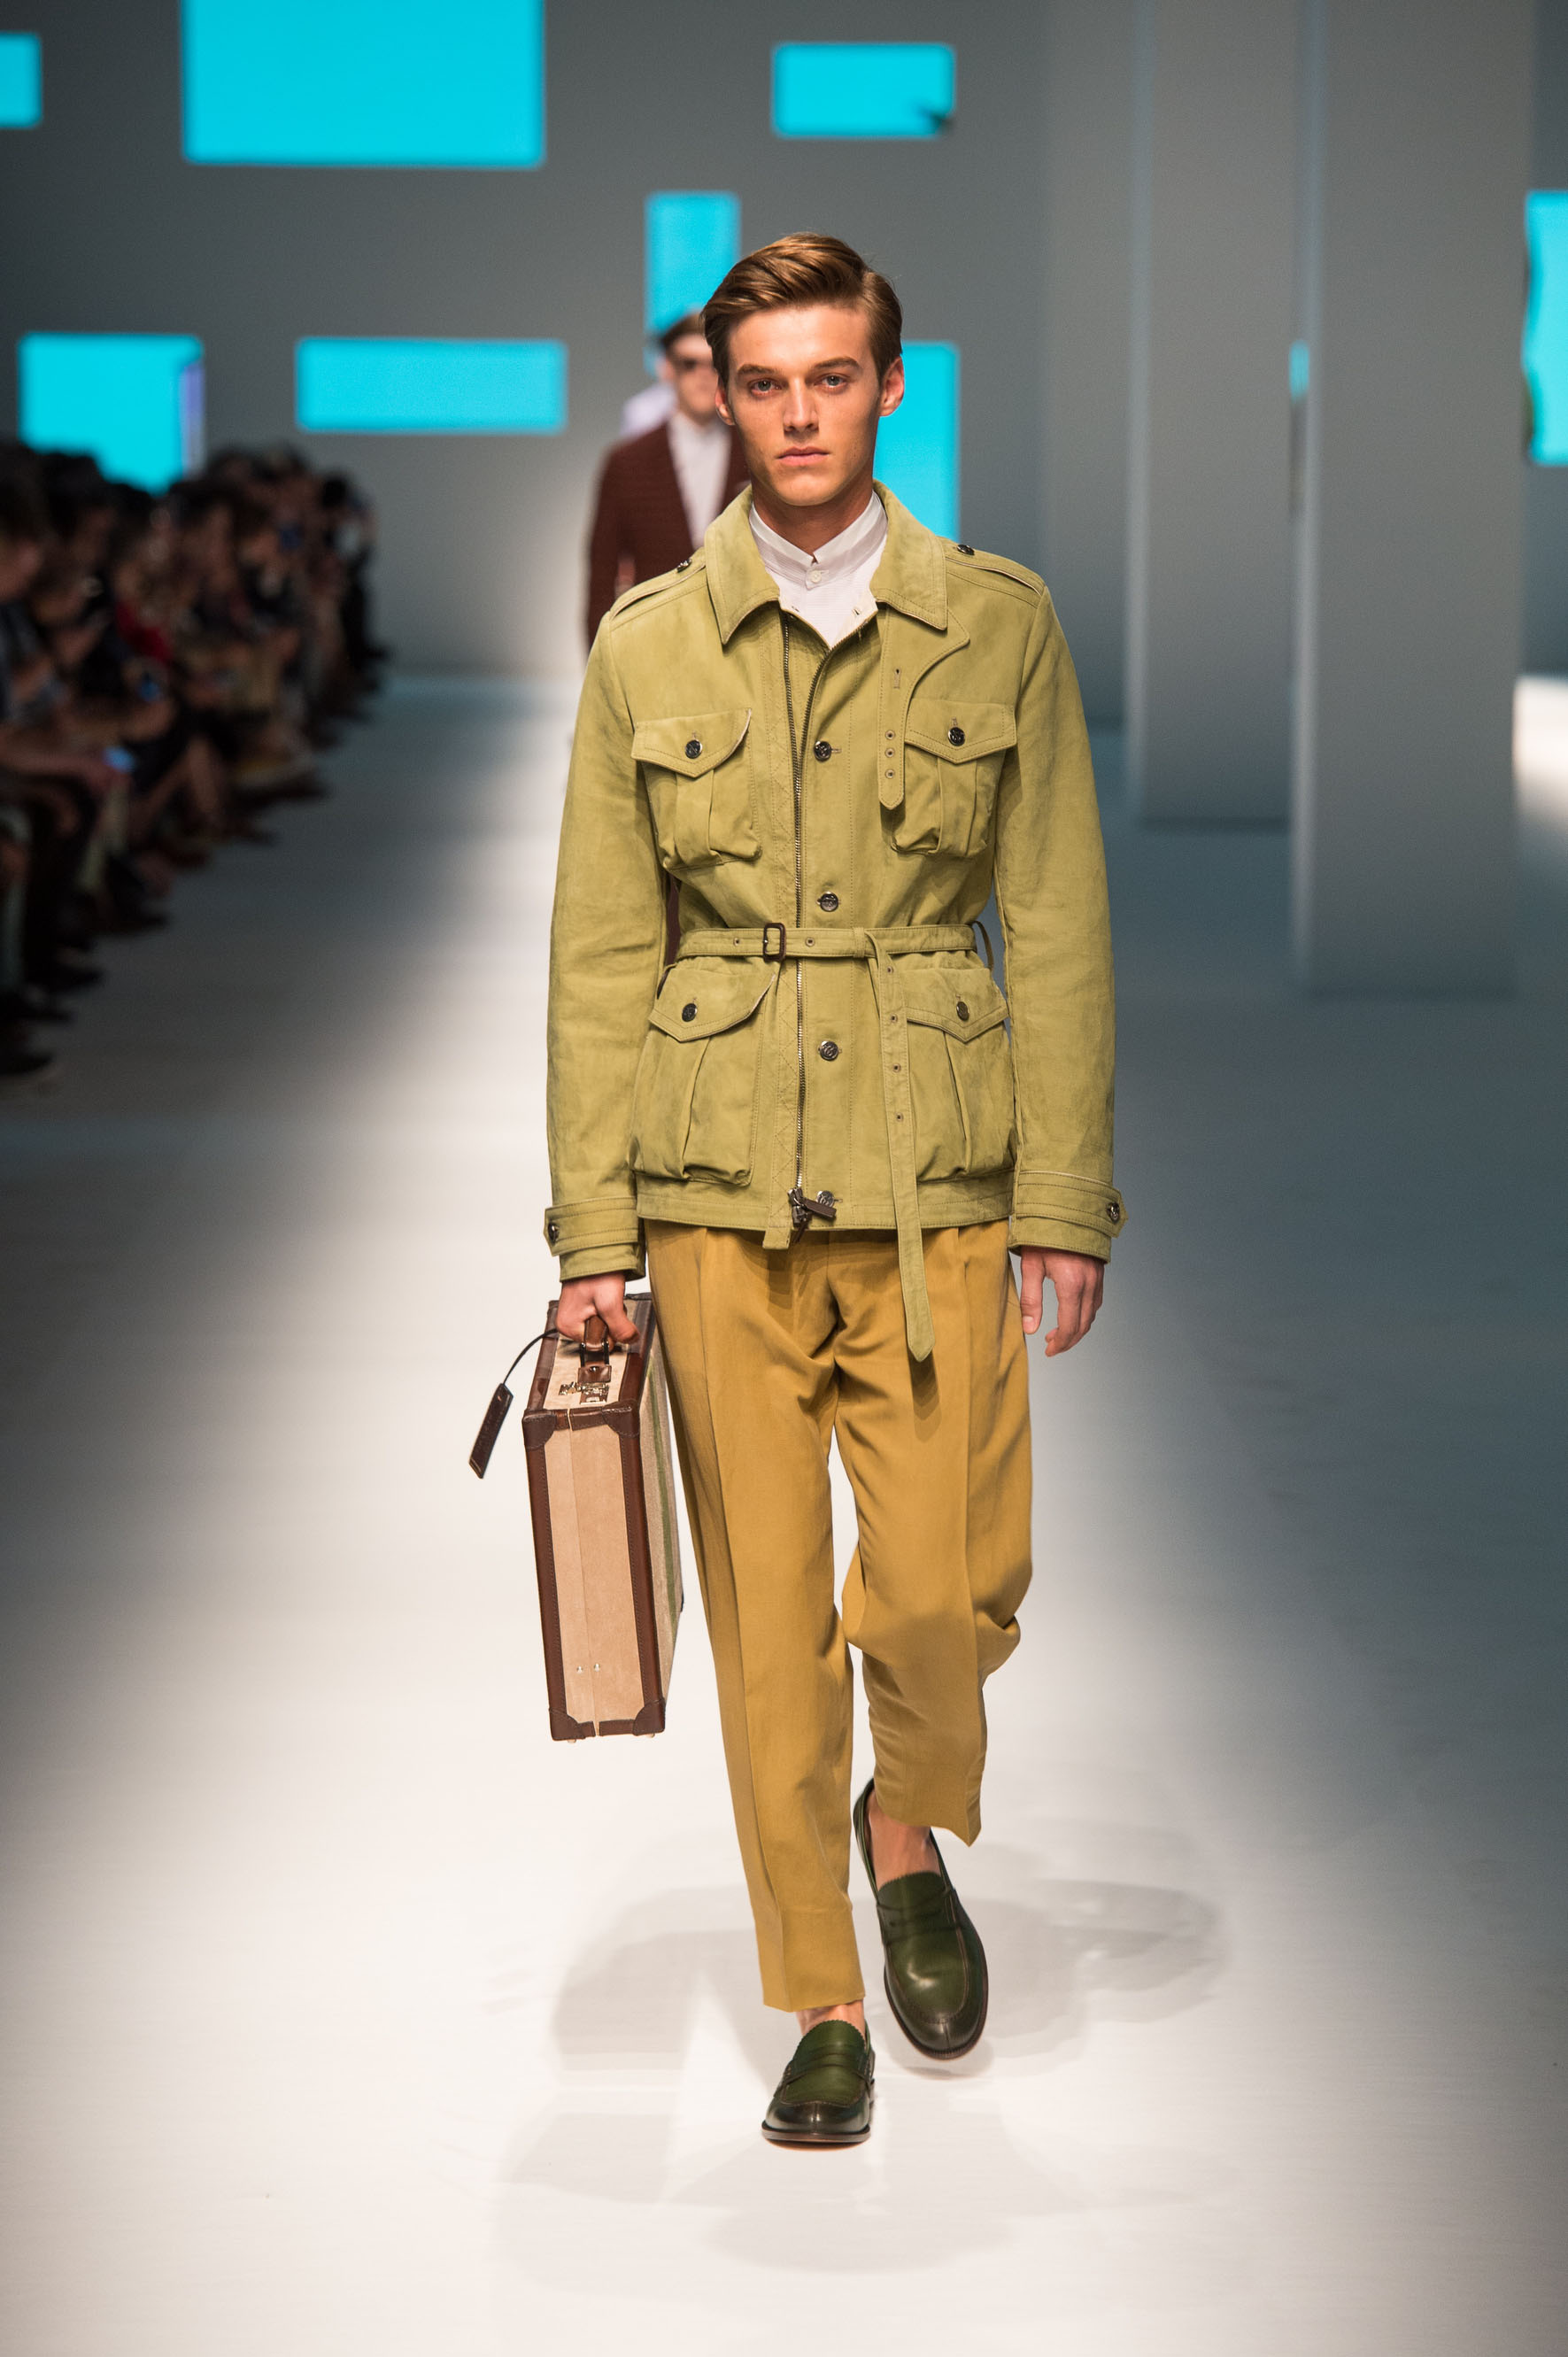 Nubuck field jacket with bellows pockets, linen-silk pants, calfskin loafers, briefcase with contrast color stripe